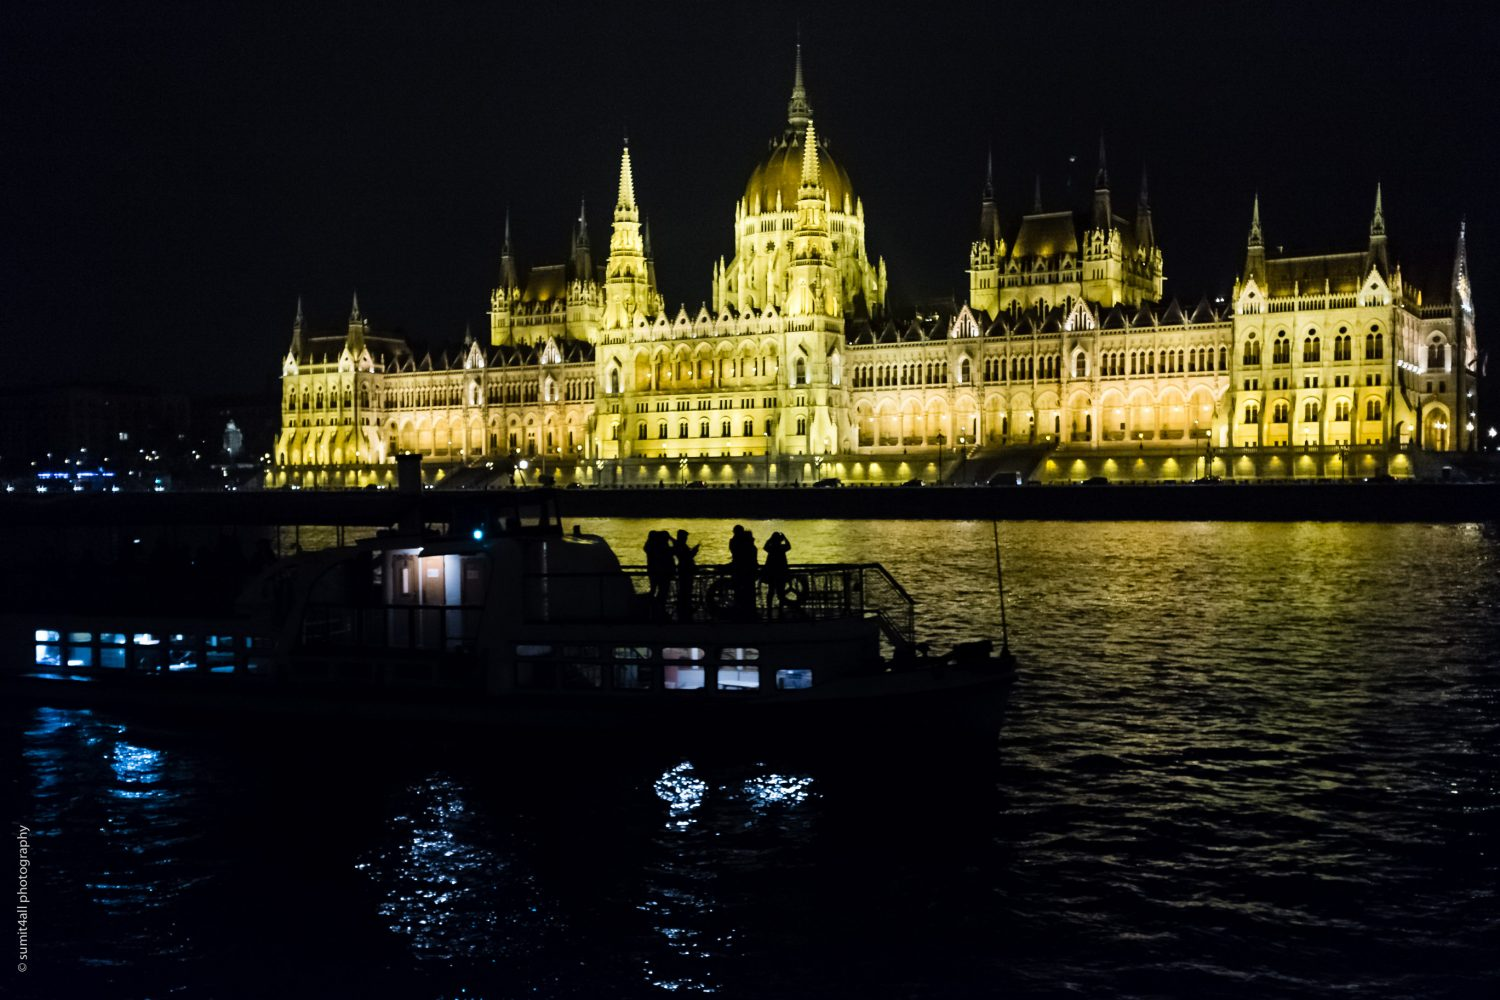 The Hungarian Parliament building and people taking photos from a boat.